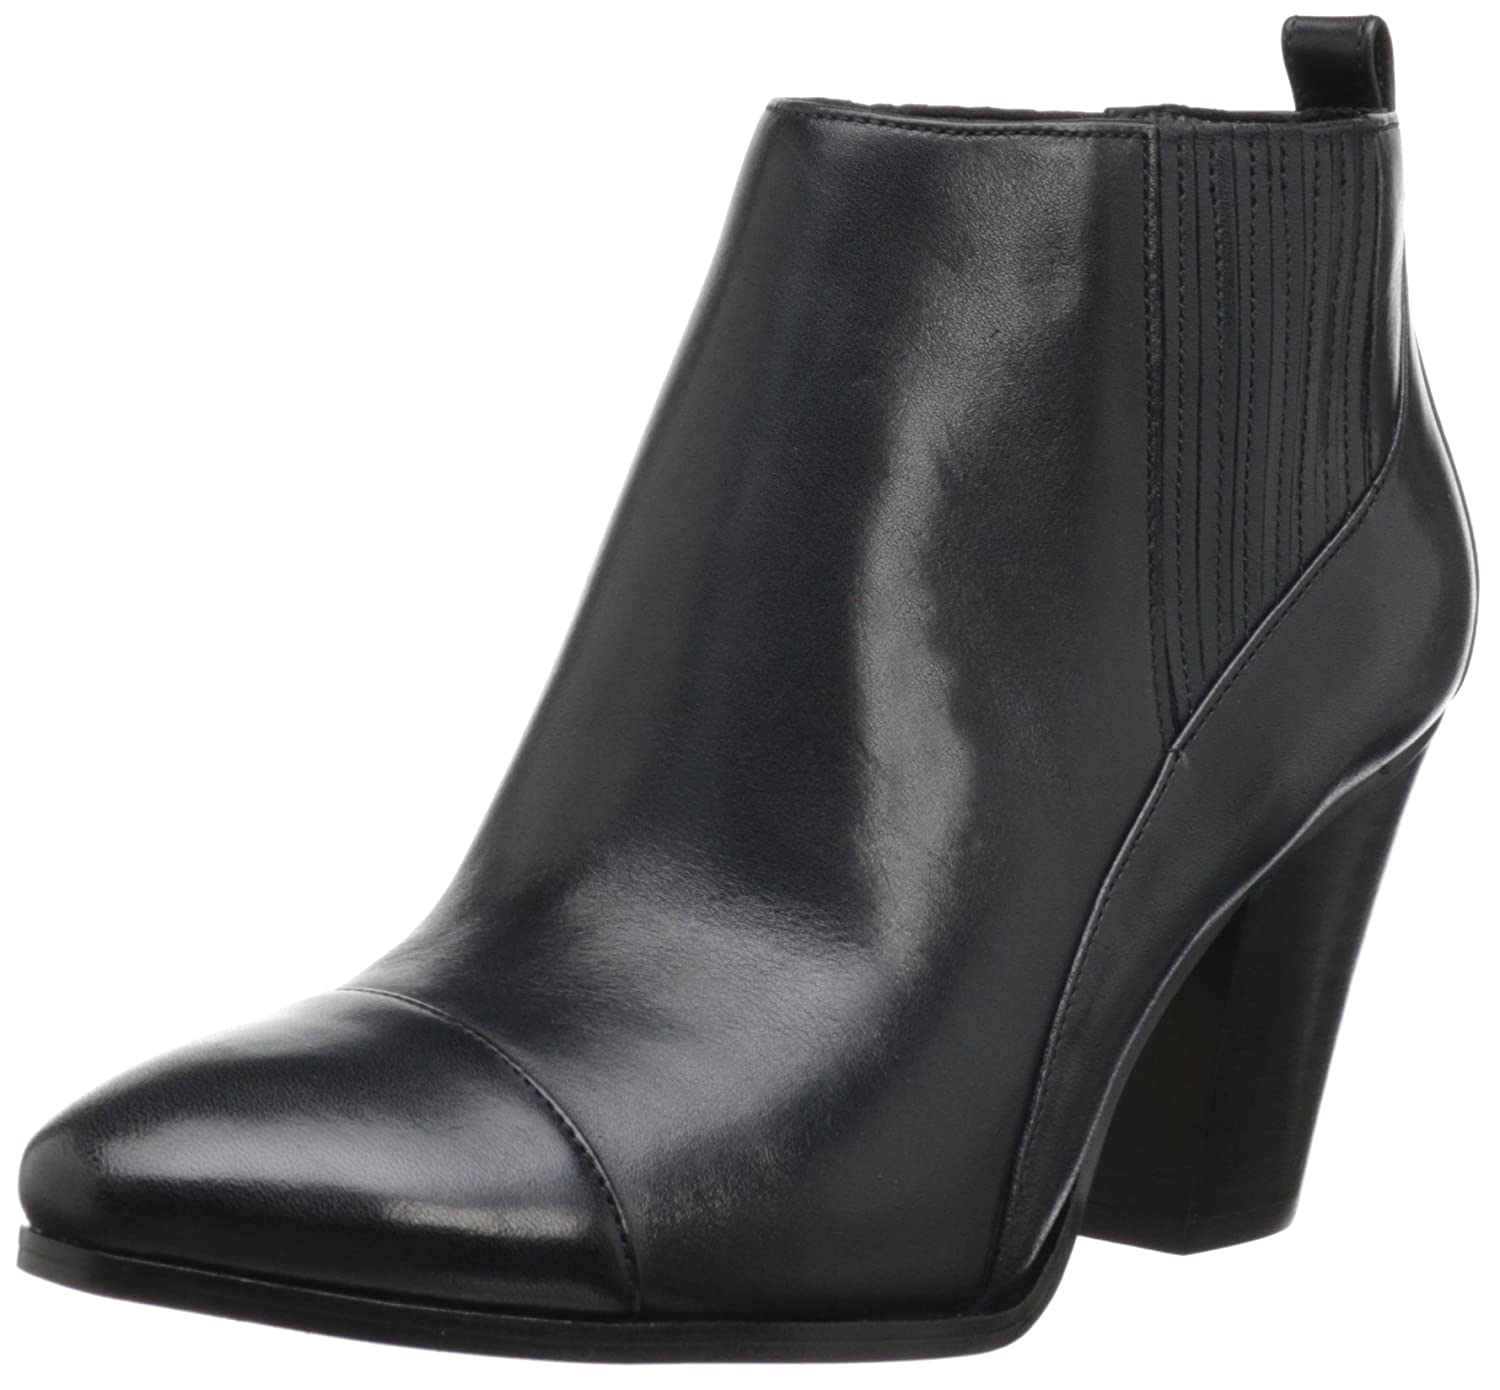 74ad03ec8842 Joan   David Collection Women s Hudsen Boot 85%OFF - lospalacios.com.ar